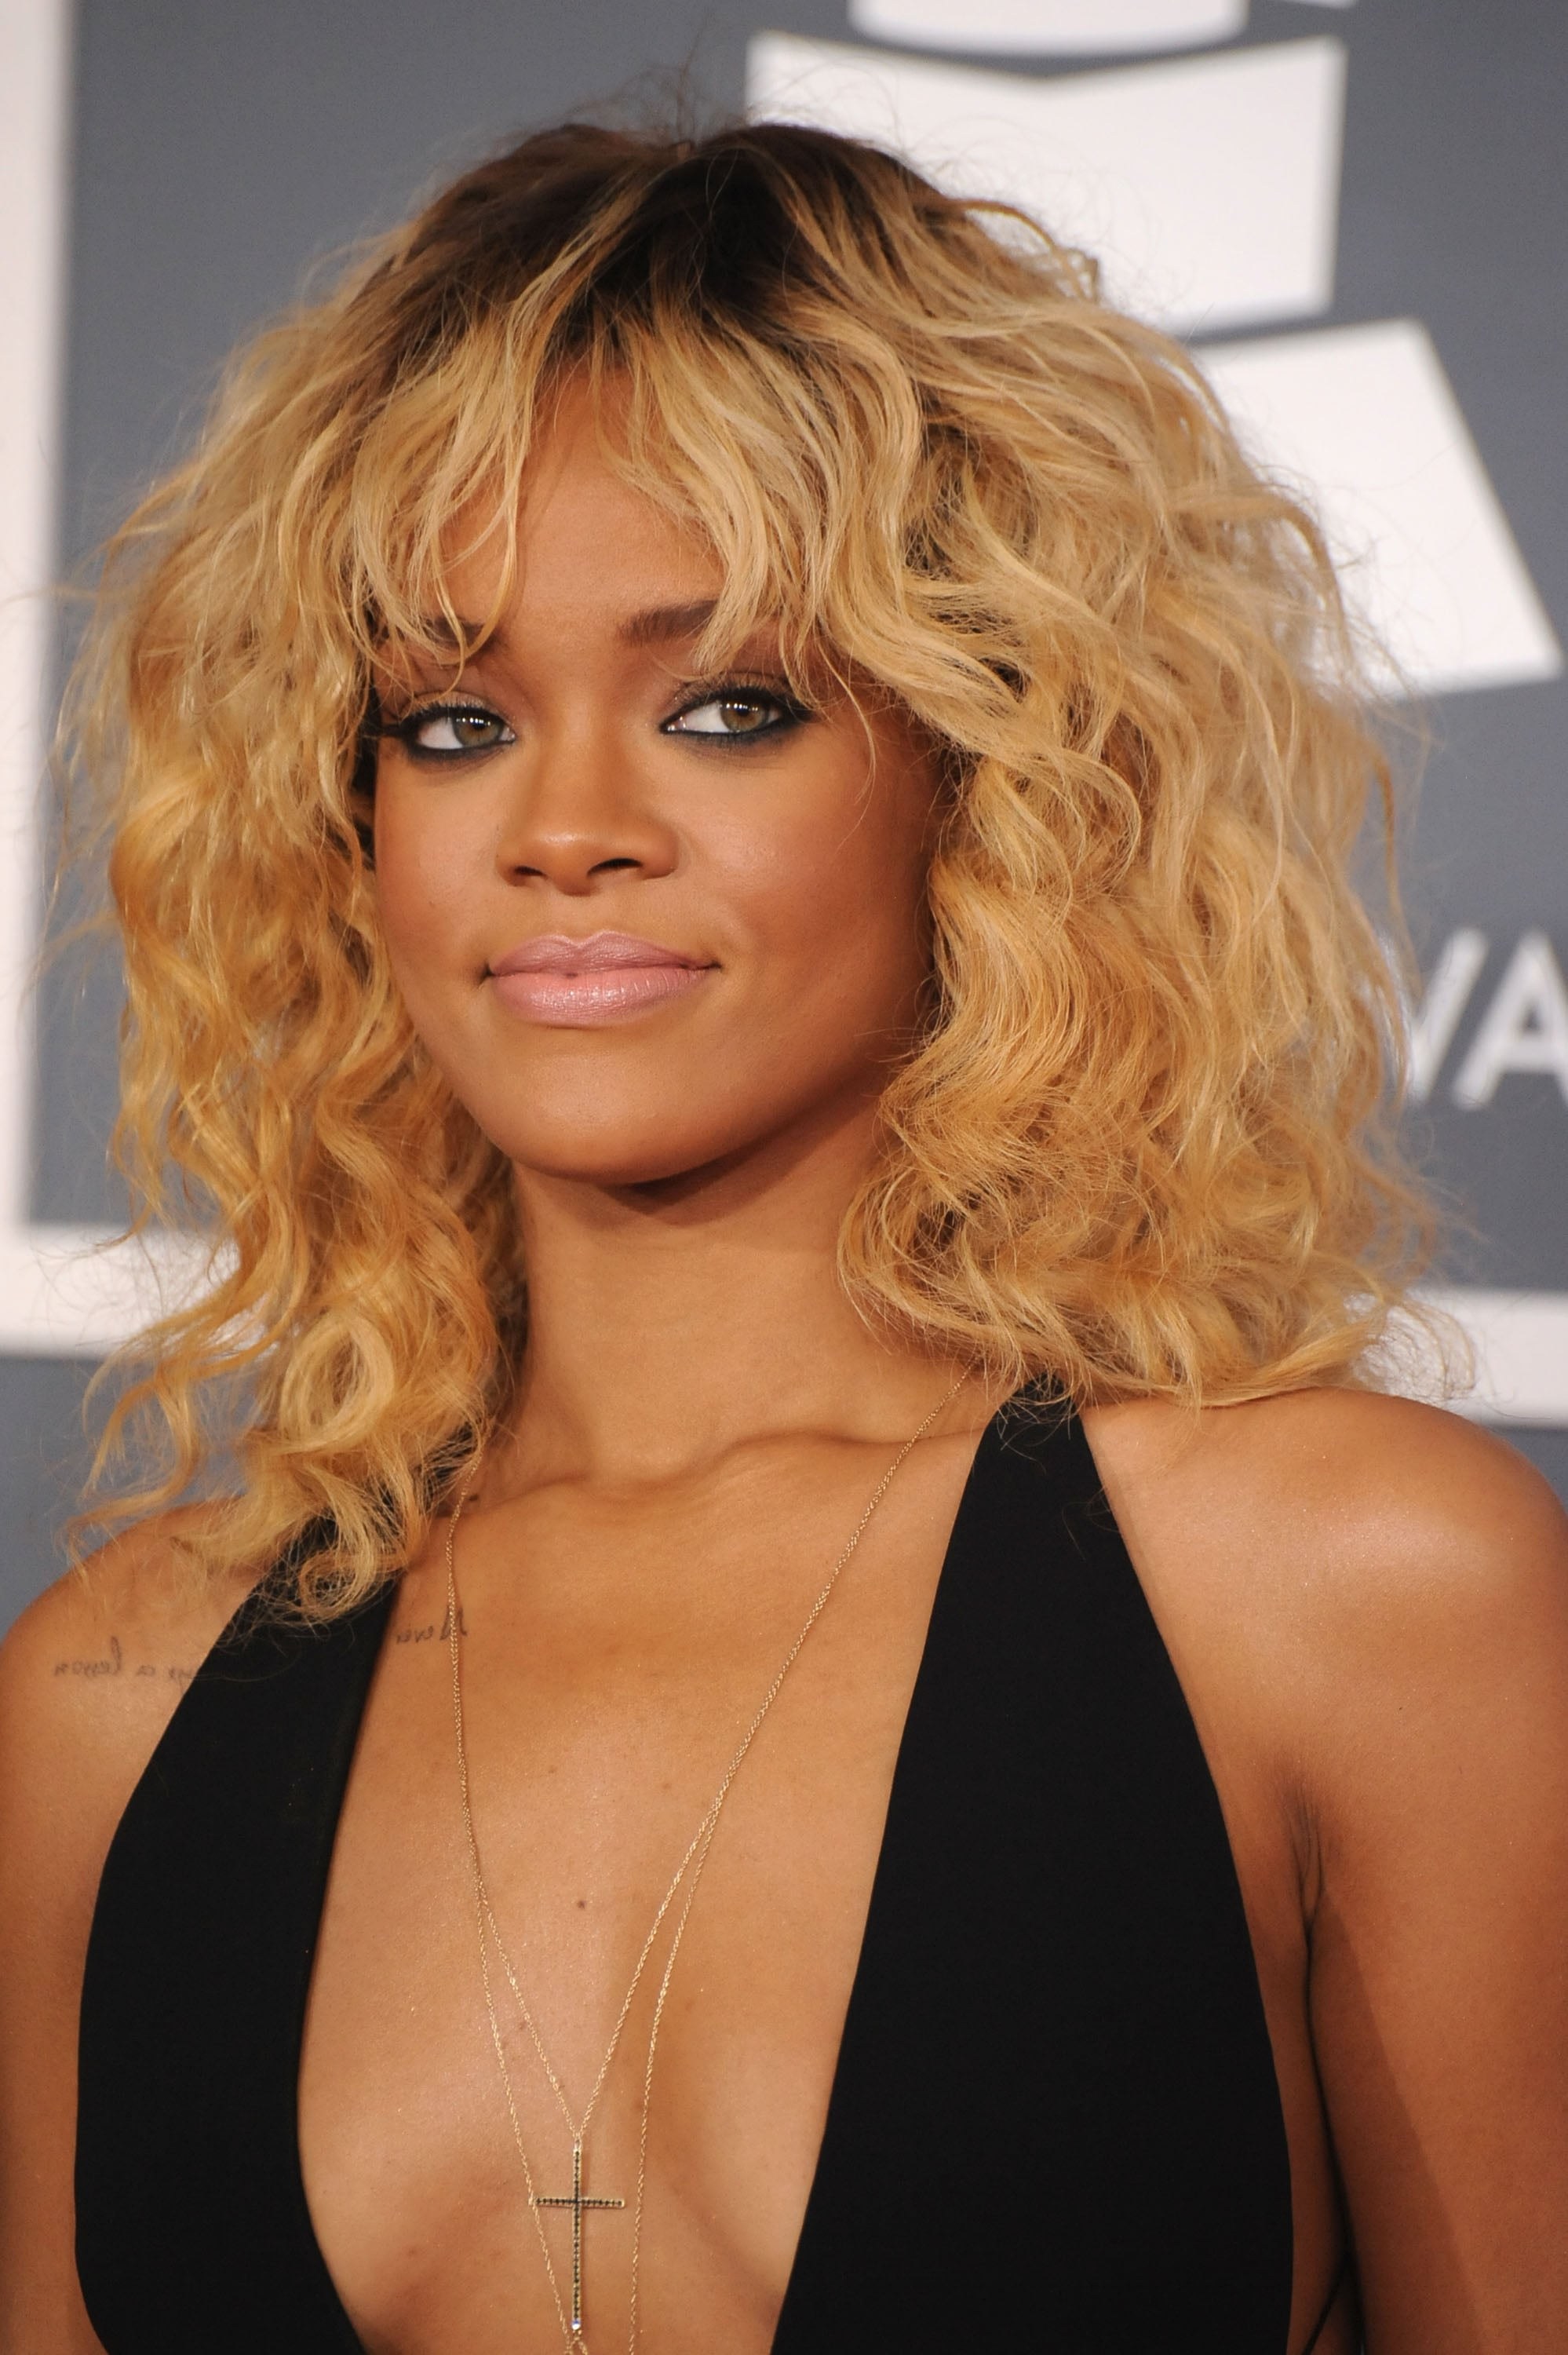 rihanna hair style rihanna with blond hair at the grammys rihanna shows 8903